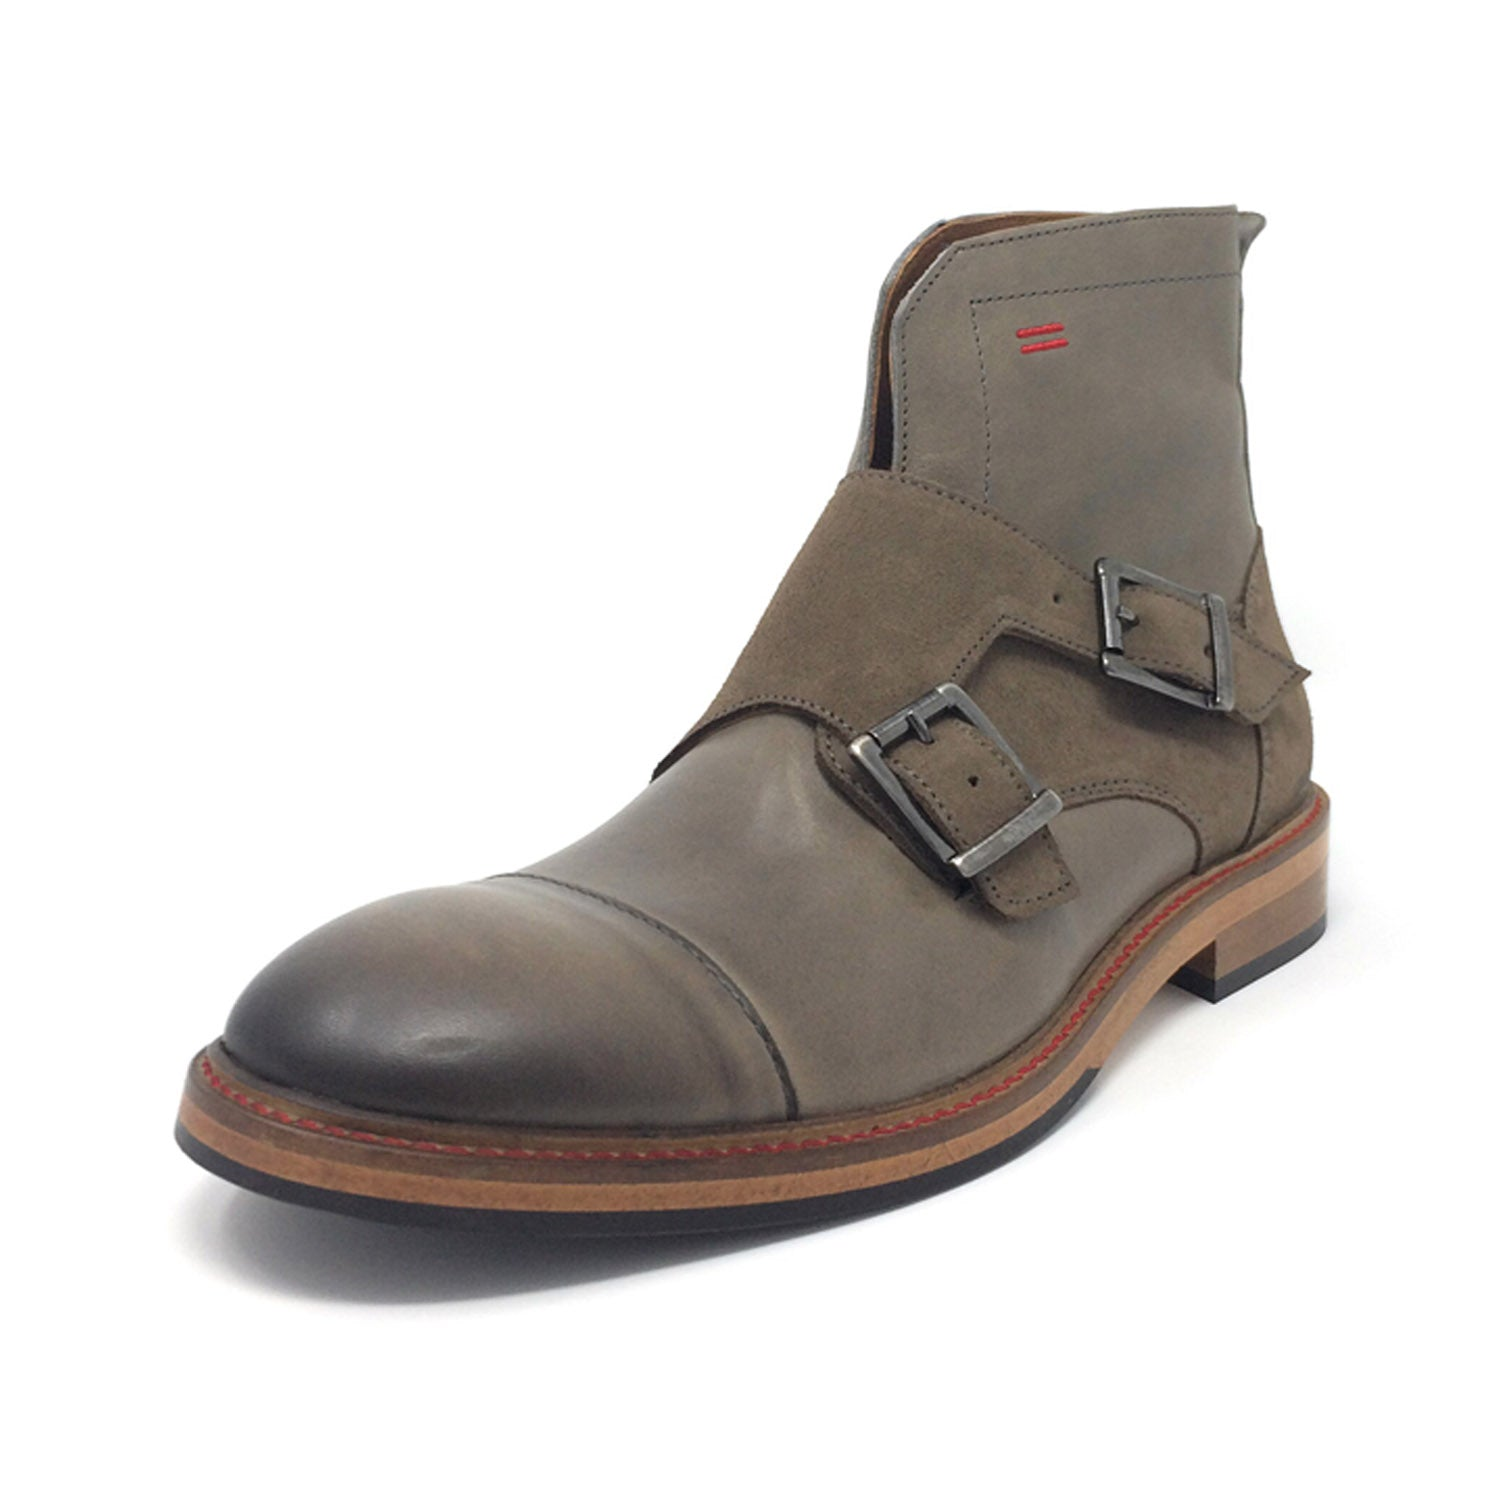 NiK Kacy Gender-Equal Gender-Neutral Luxury Monkstrap Boots in Beige and Grey Genuine Leather